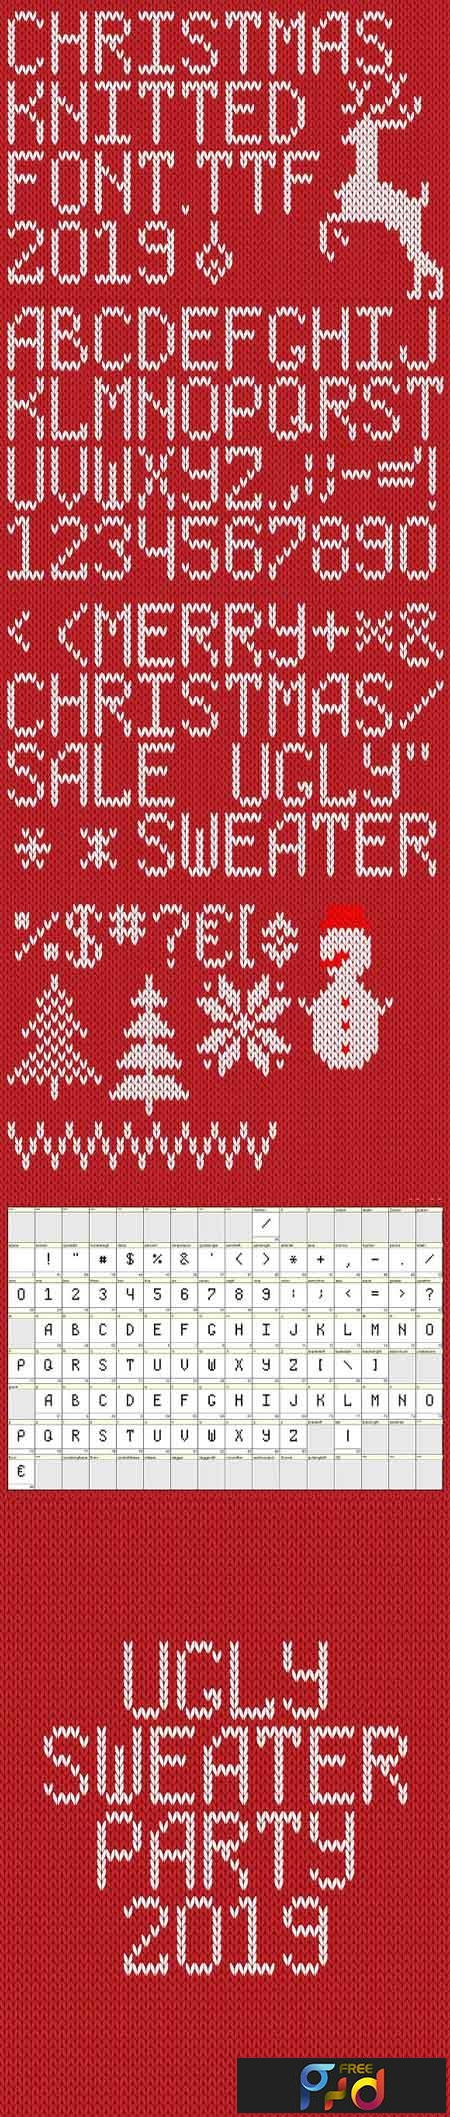 Christmas Knitted Font Ol Version 2.0 2981888 1